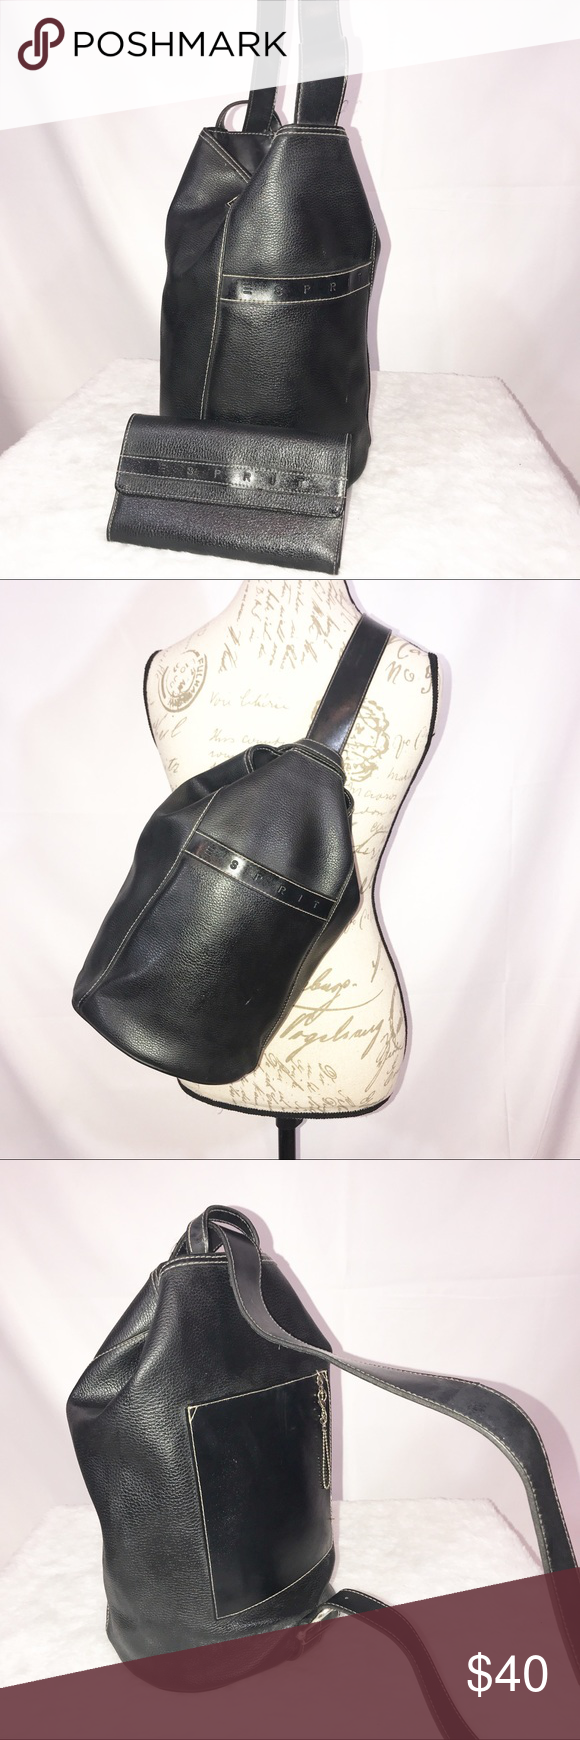 28bc30933 Vintage ESPRIT Black Sling Bag And Wallet Bucket In great preowned vintage  condition. Bag can be worn as a sling bag or carried as a bucket bag. Esprit  Bags